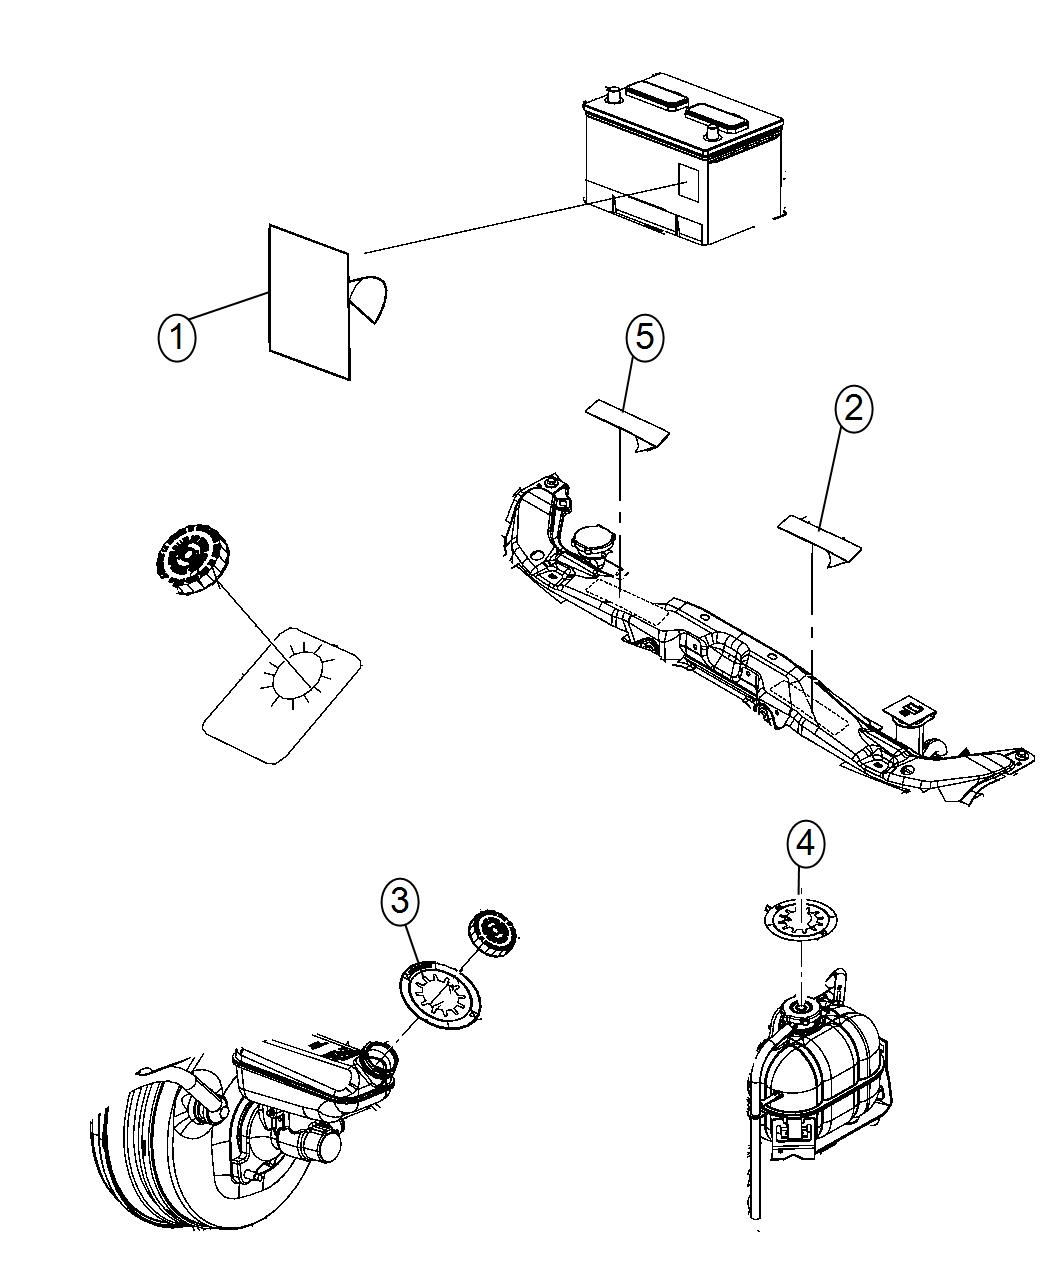 Jeep Grand Cherokee Label Air Conditioning System